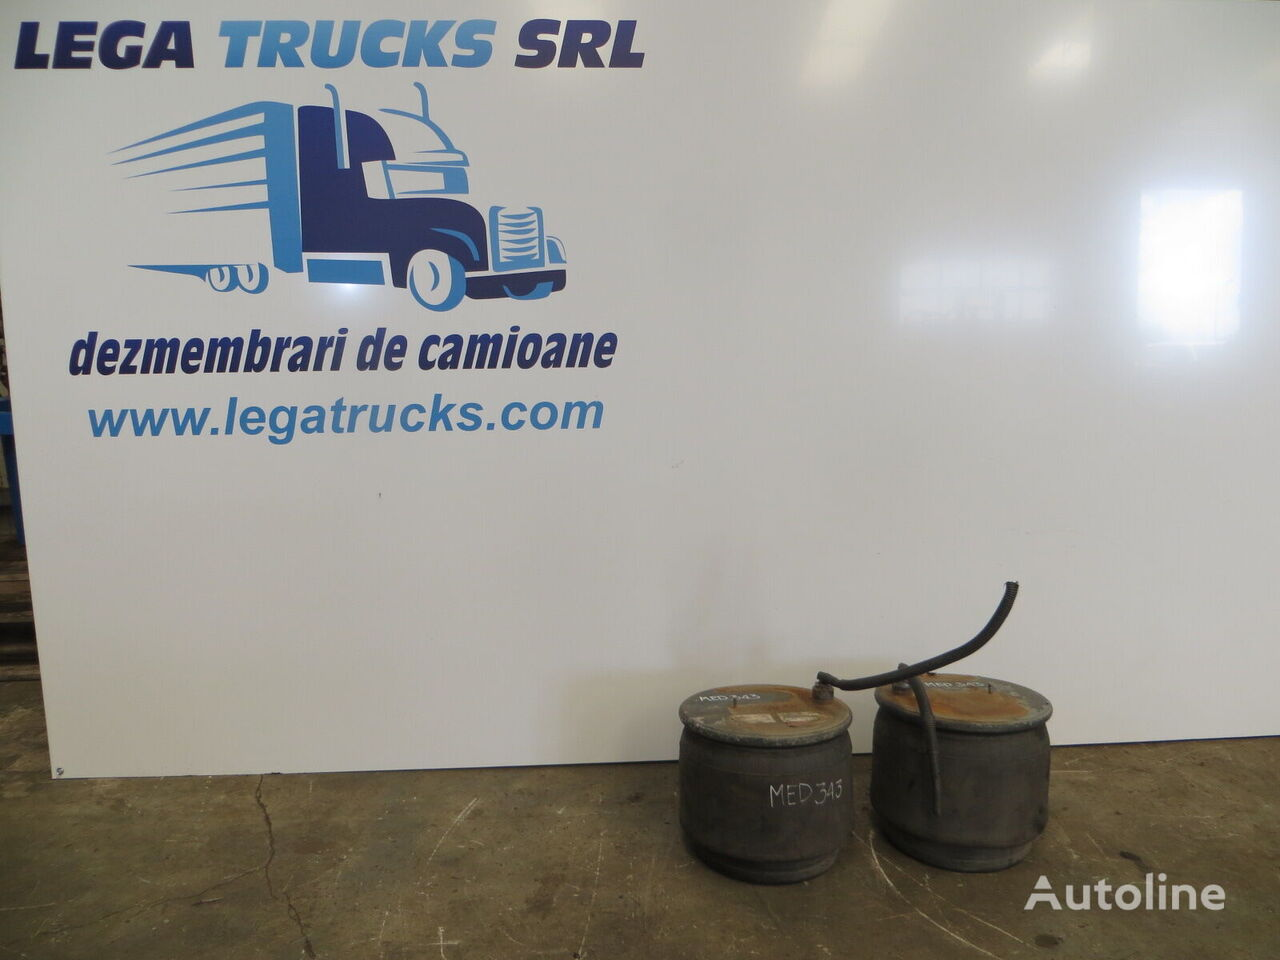 MERCEDES-BENZ POMPA SPALARE GEAM MERCEDES ACTROS washer pump for MERCEDES-BENZ ACTROS tractor unit